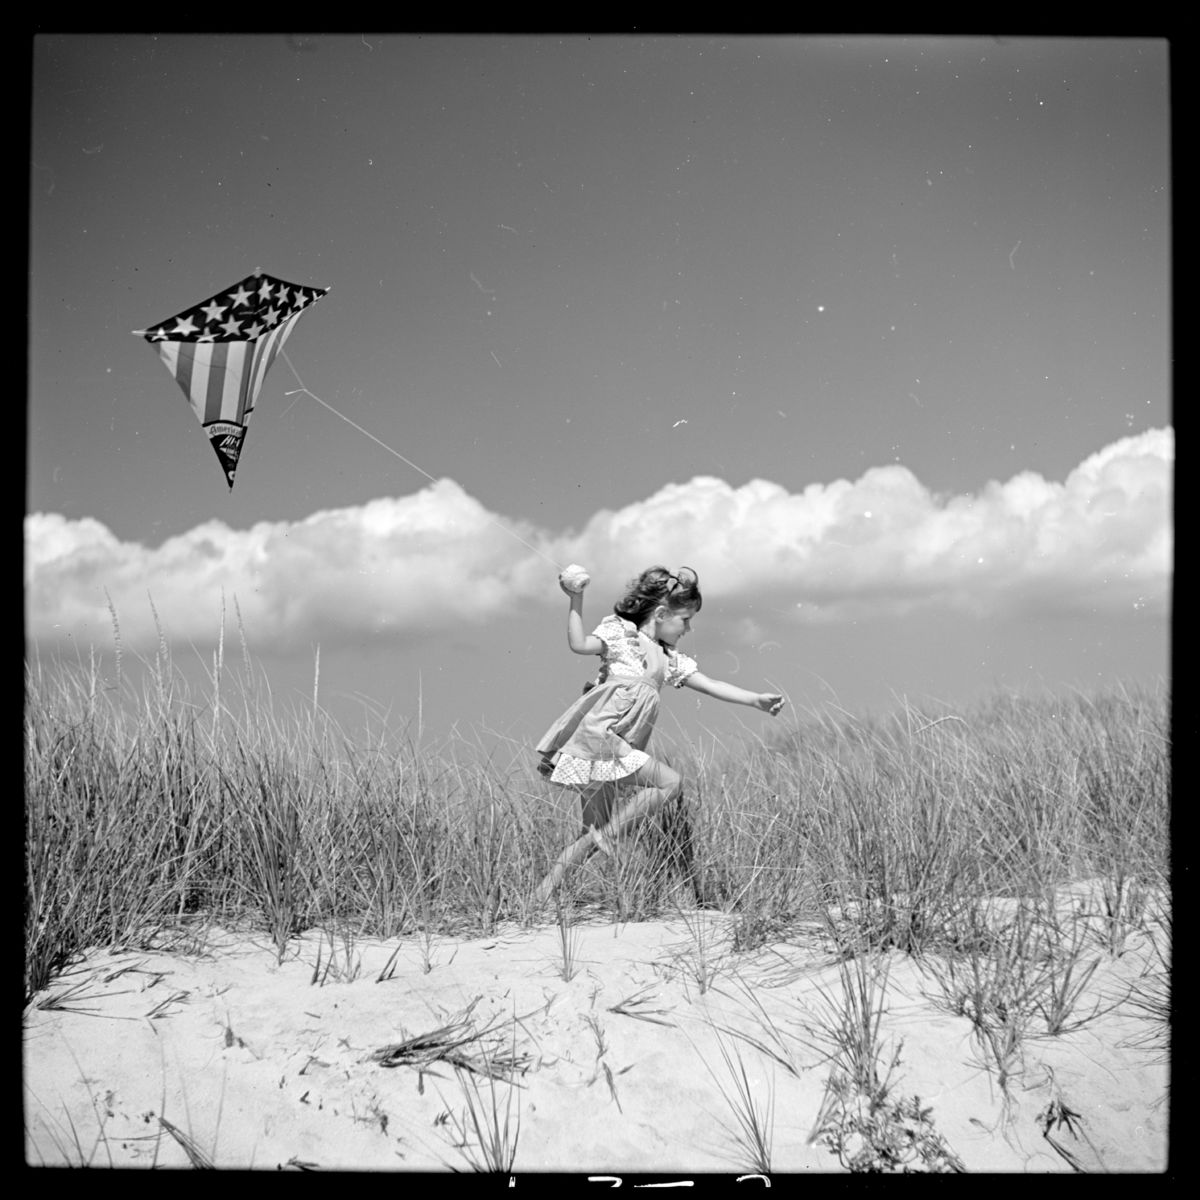 Photograph shows Toni Frissell's daughter, Sidney Bacon (Frissell) Stafford, running on a beach with a kite in Southampton, Long Island, New York in 1944 - by Toni Frissell.